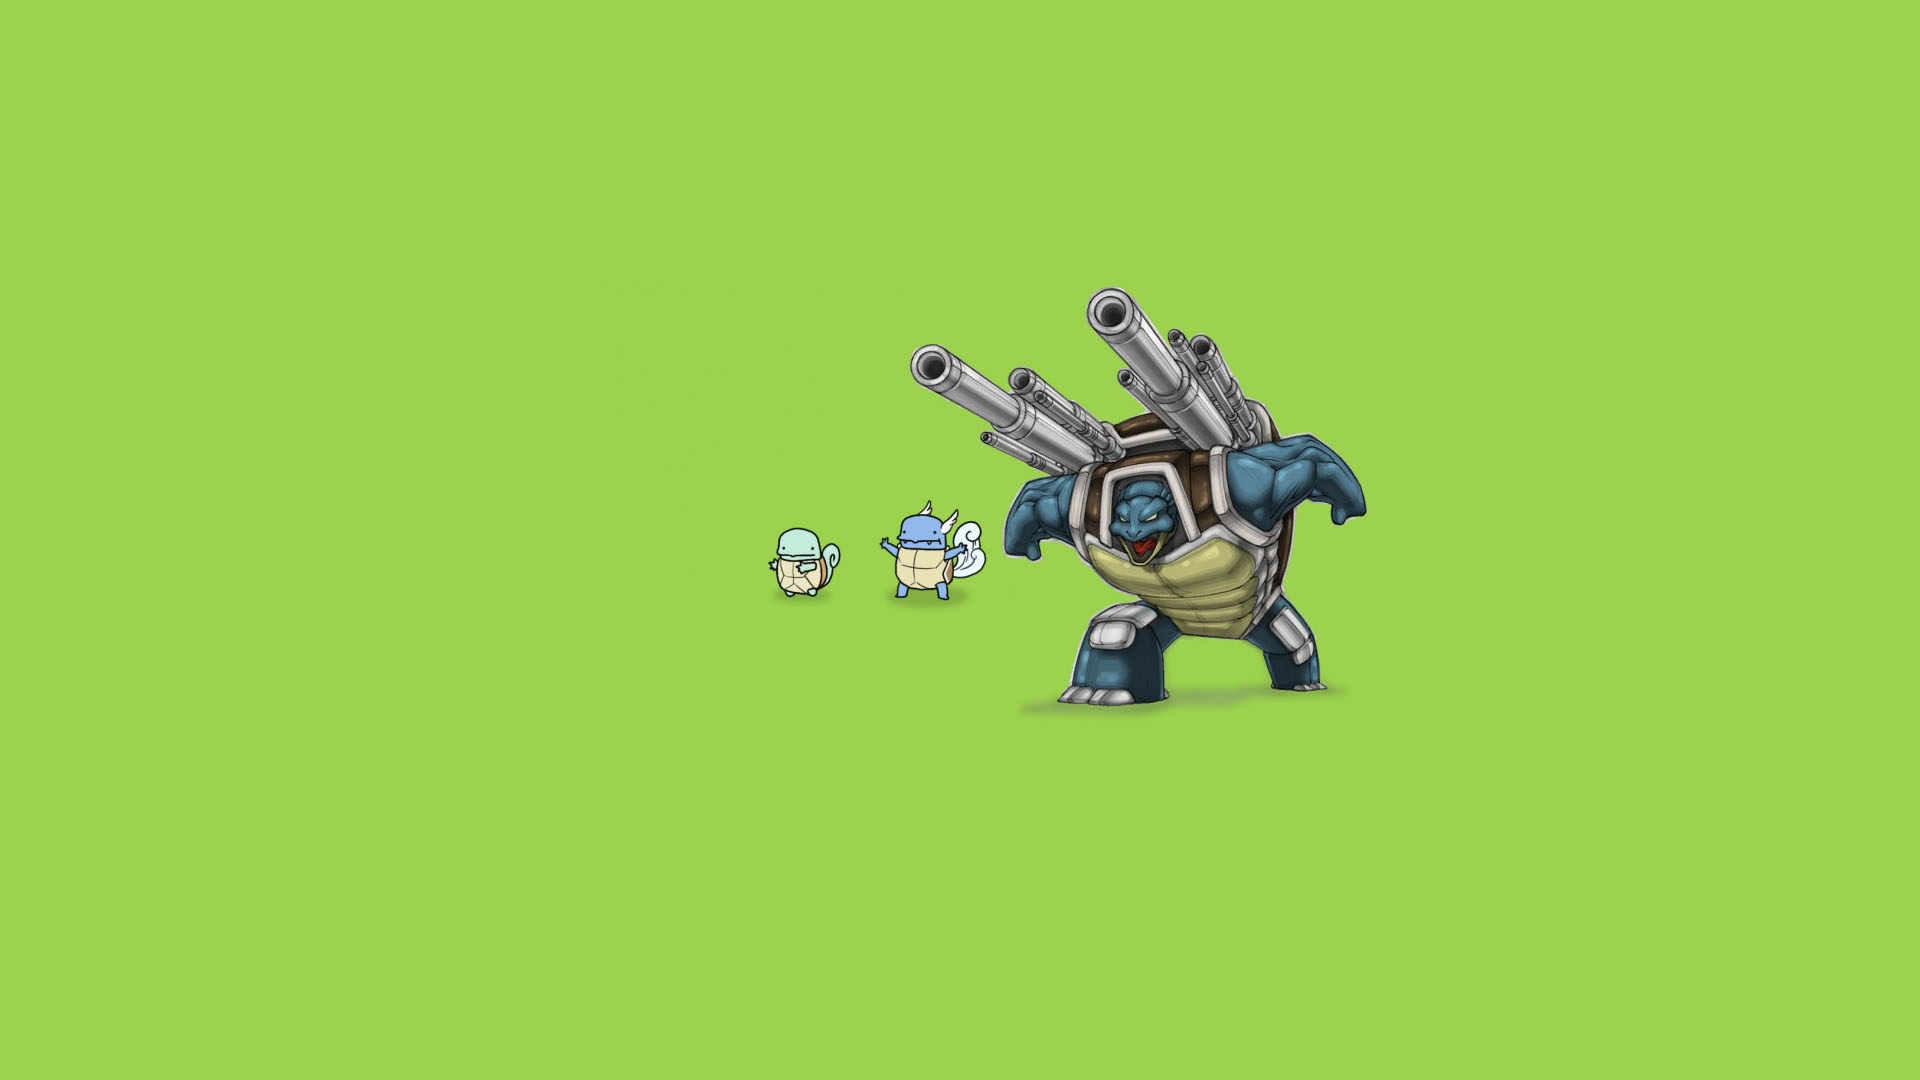 Green Pokemon Wallpaper 1920x1080 Green Pokemon 1920x1080